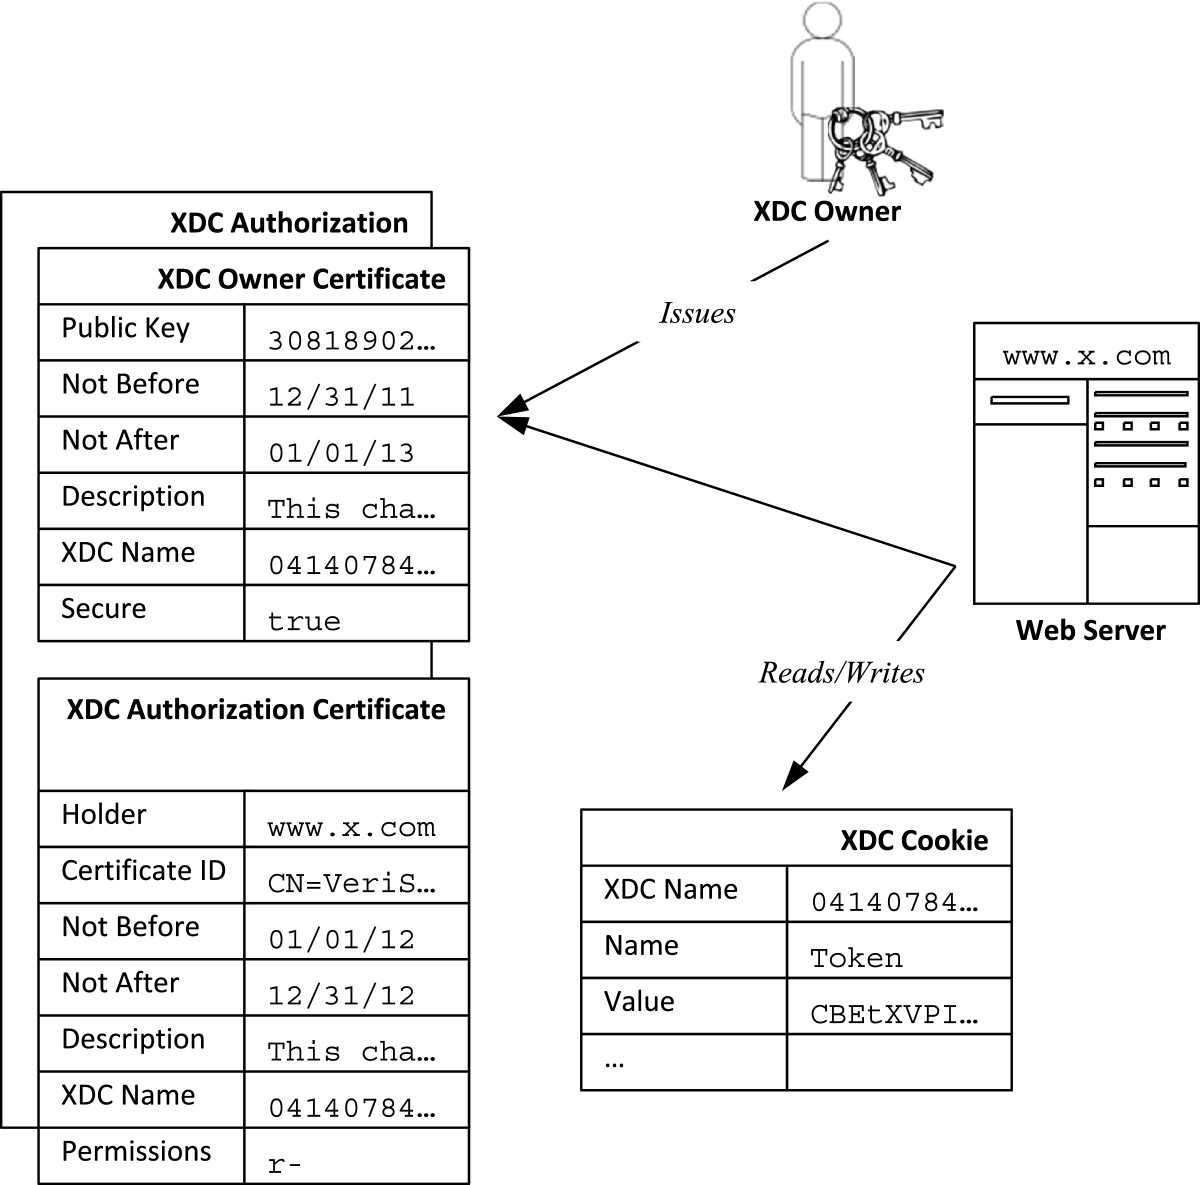 https://static-content.springer.com/image/art%3A10.1186%2F1869-0238-4-13/MediaObjects/13174_2013_Article_11_Fig1_HTML.jpg